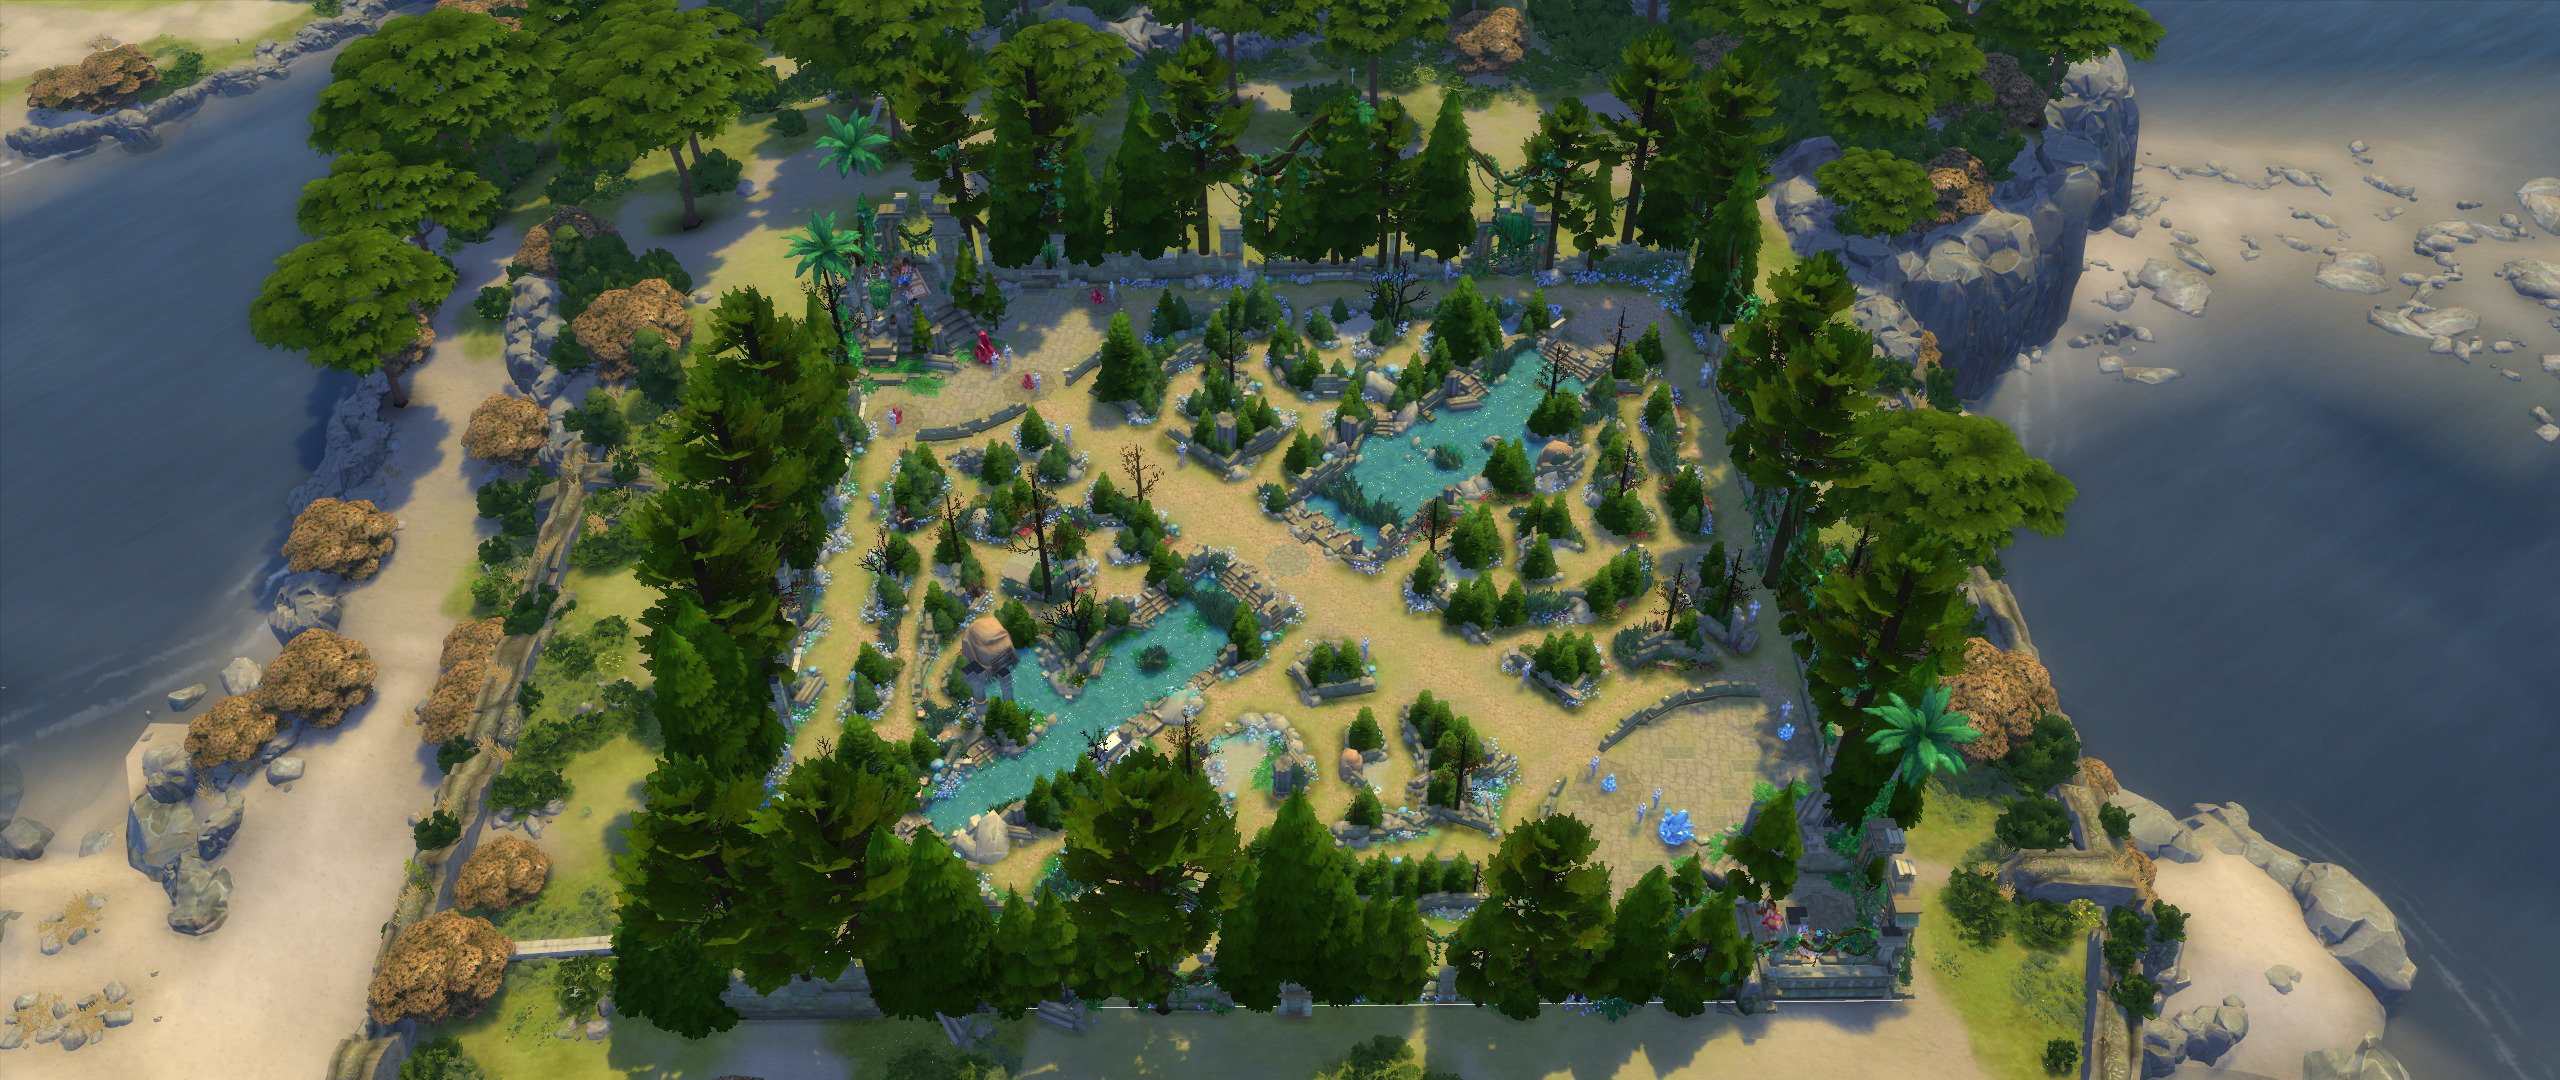 Summoner's Rift made on The Sims 4